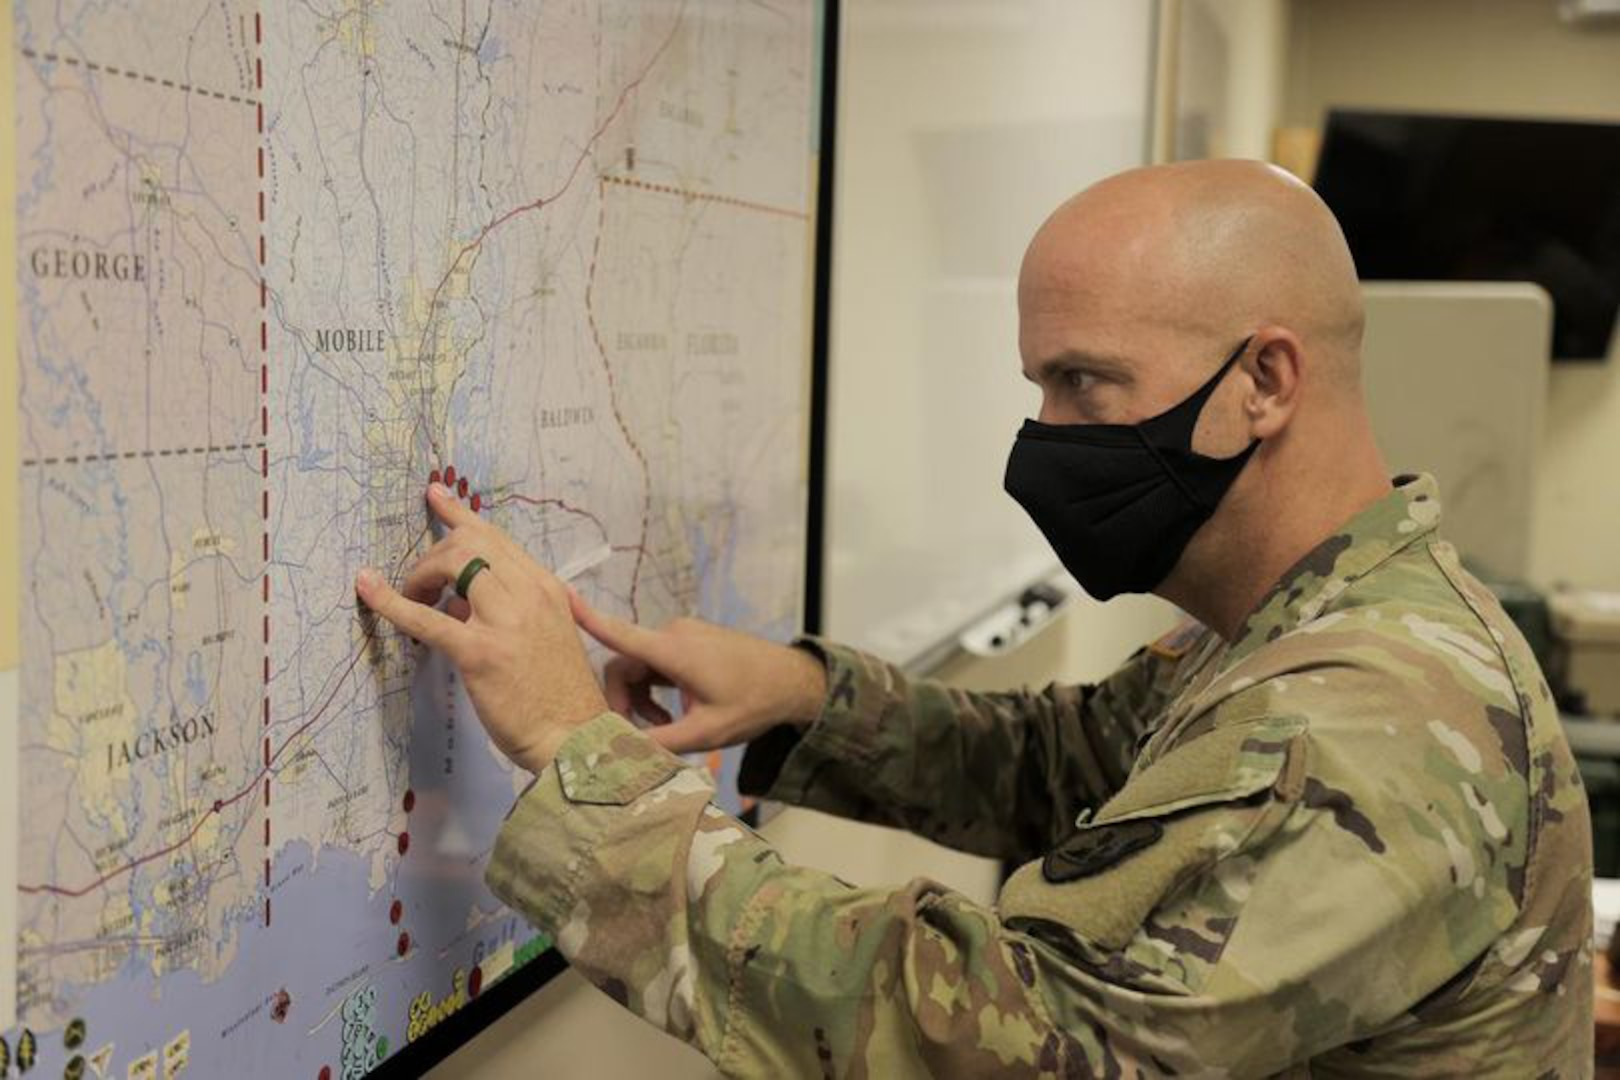 Cpt. Russell Parman of the Alabama National Guard's 711th Combat Sustainment Support Battalion adds dots to a map tracking road closures and incidents due to Hurricane Ida.